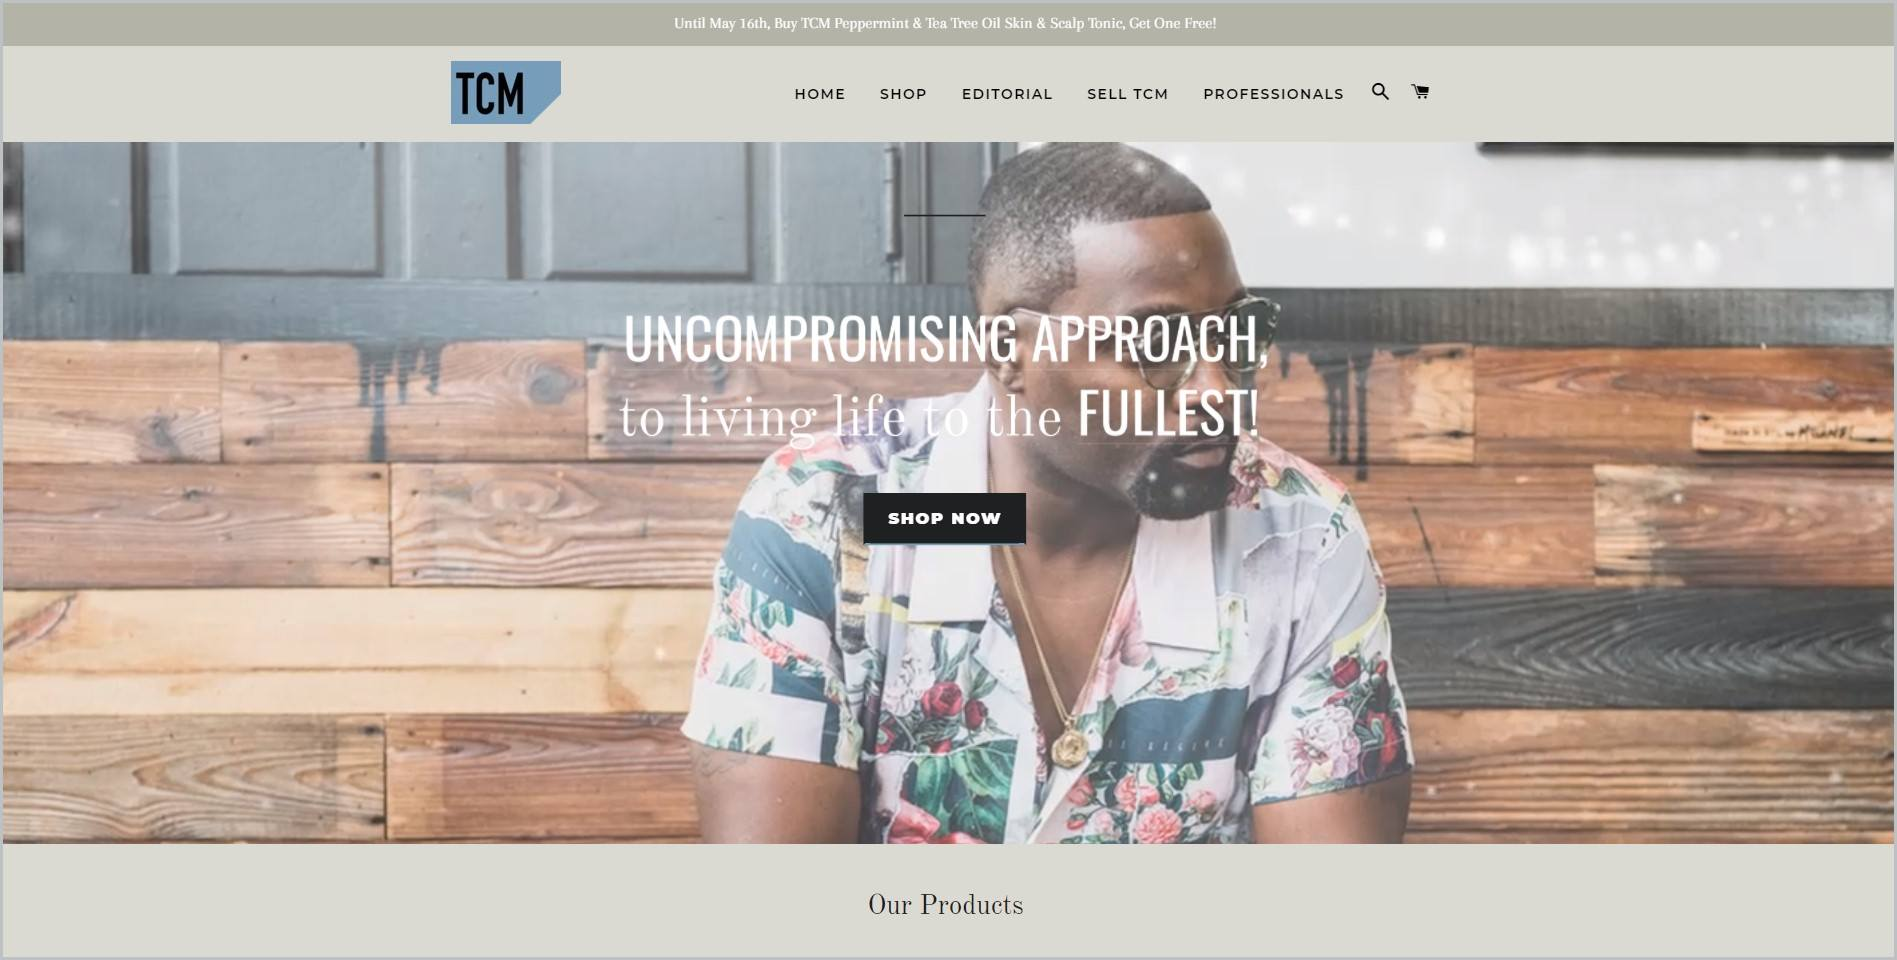 screenshot of TCM Lifestyle homepage showcasing an image of a freshly groomed black man in printed polo shirt